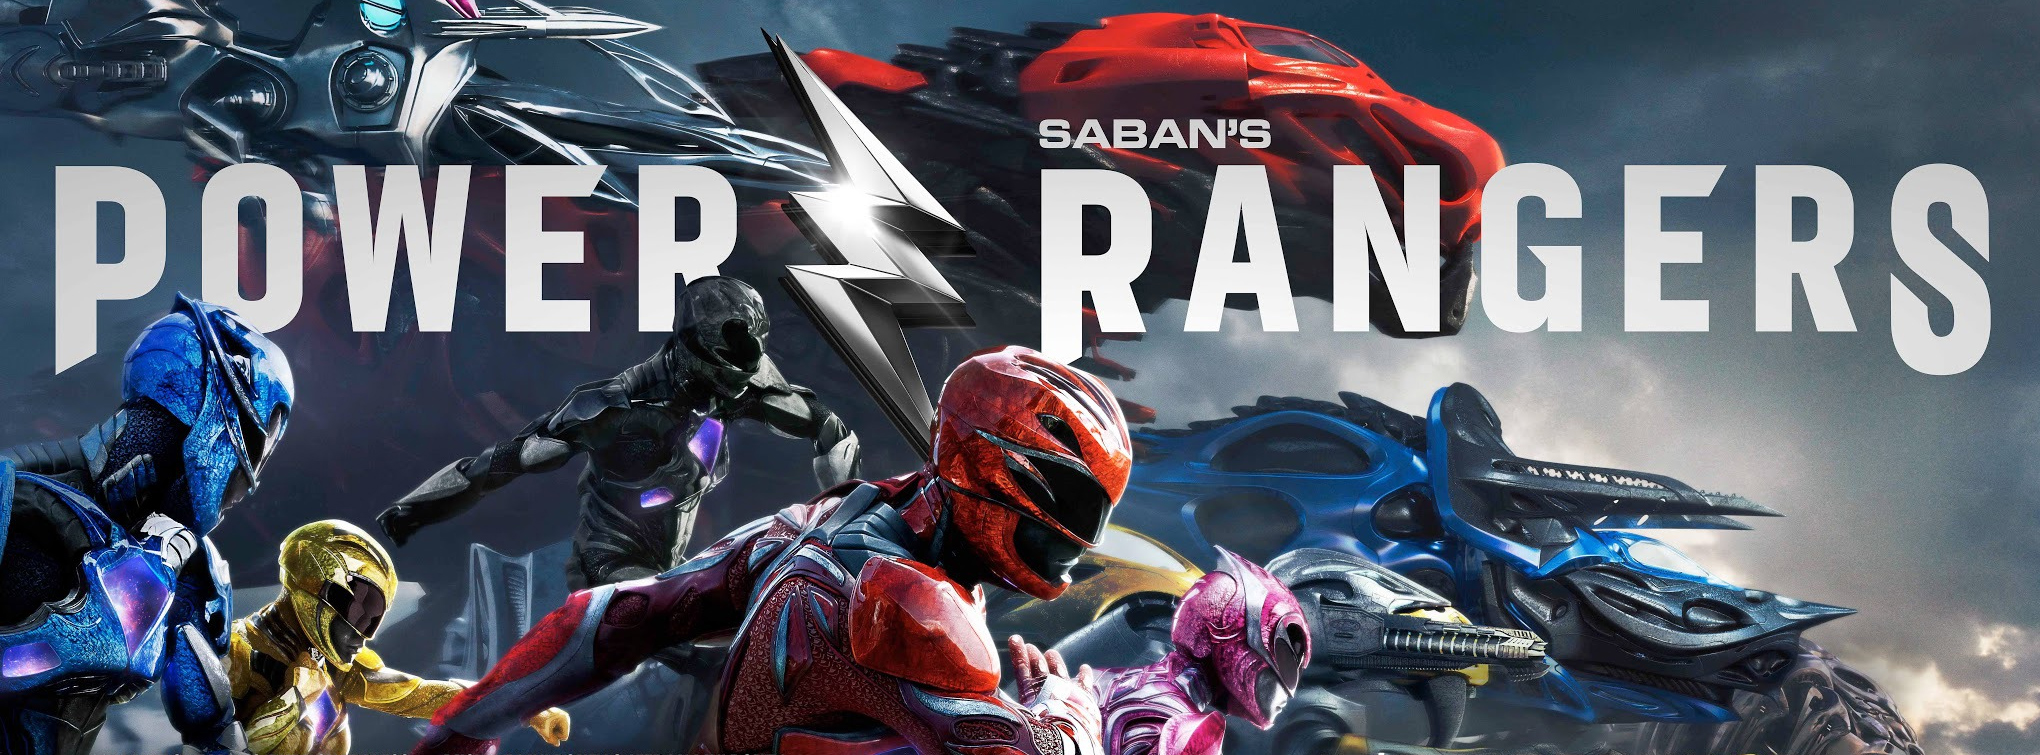 Power Rangers premieres Thursday, March 23 at select locations!